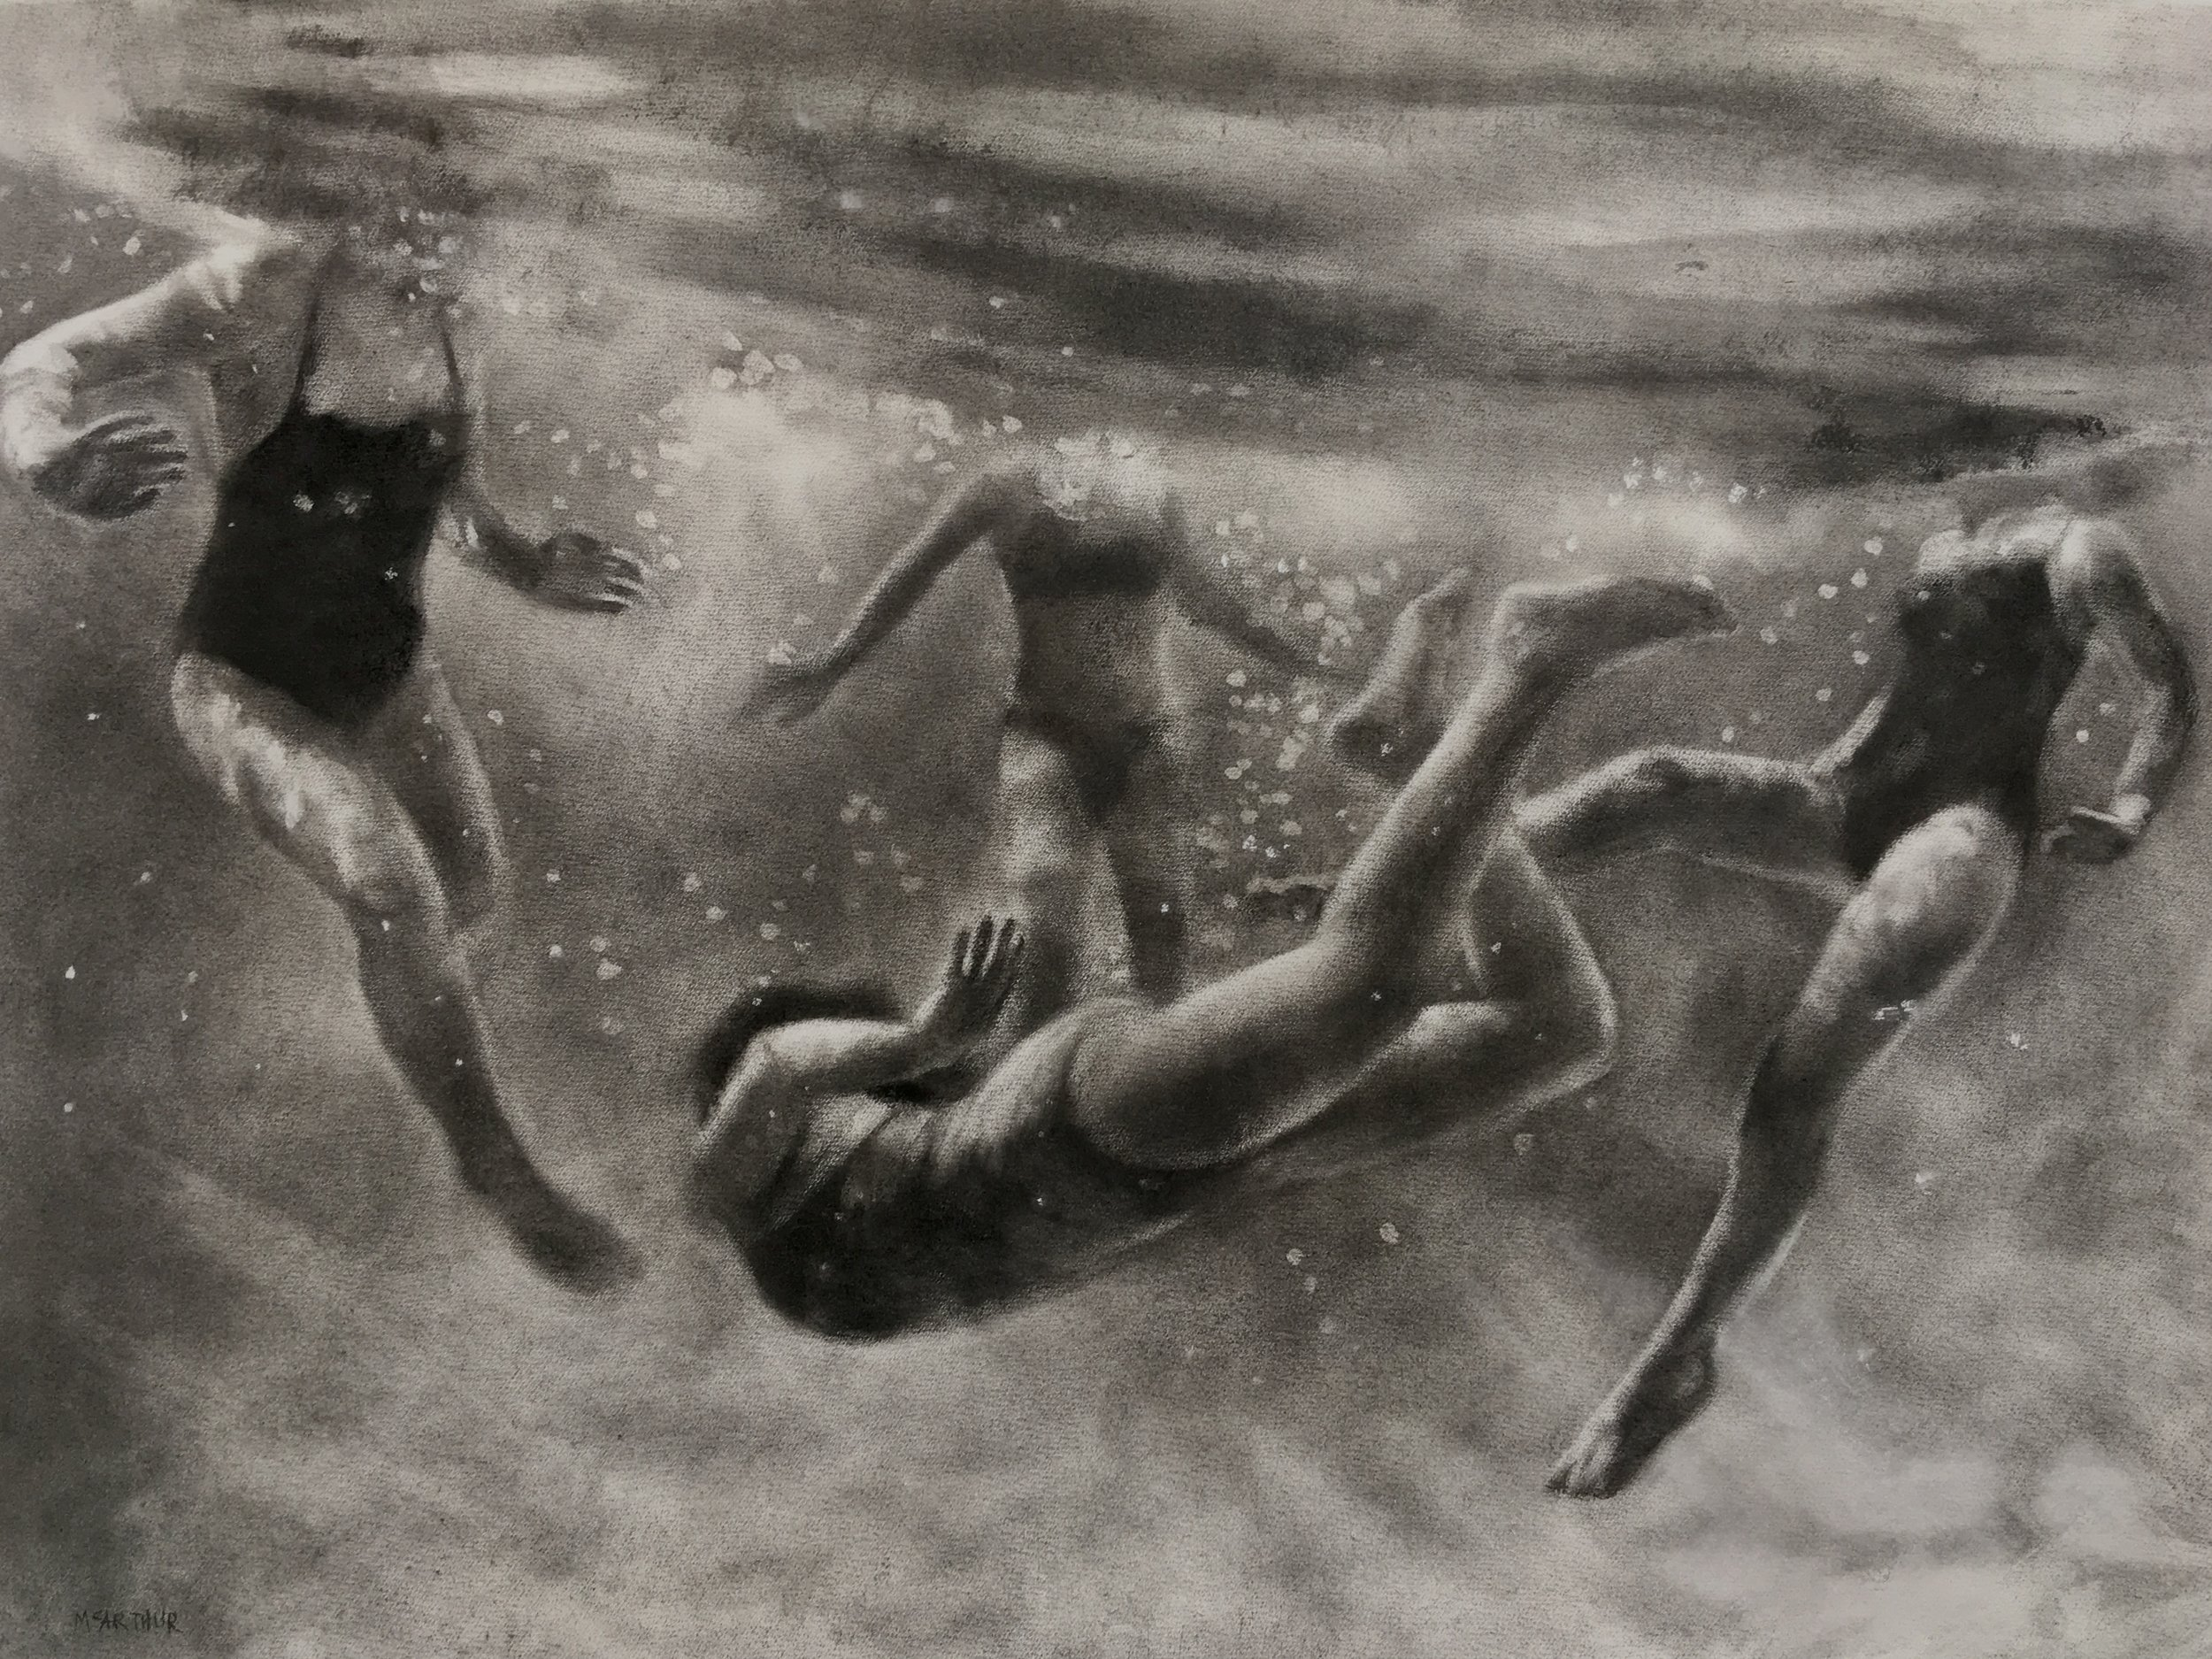 Artist: Patsy McArthur  Title: The Magic Cove  Size: 78 x 104 cm  Medium: Charcoal on paper  Price: £2700